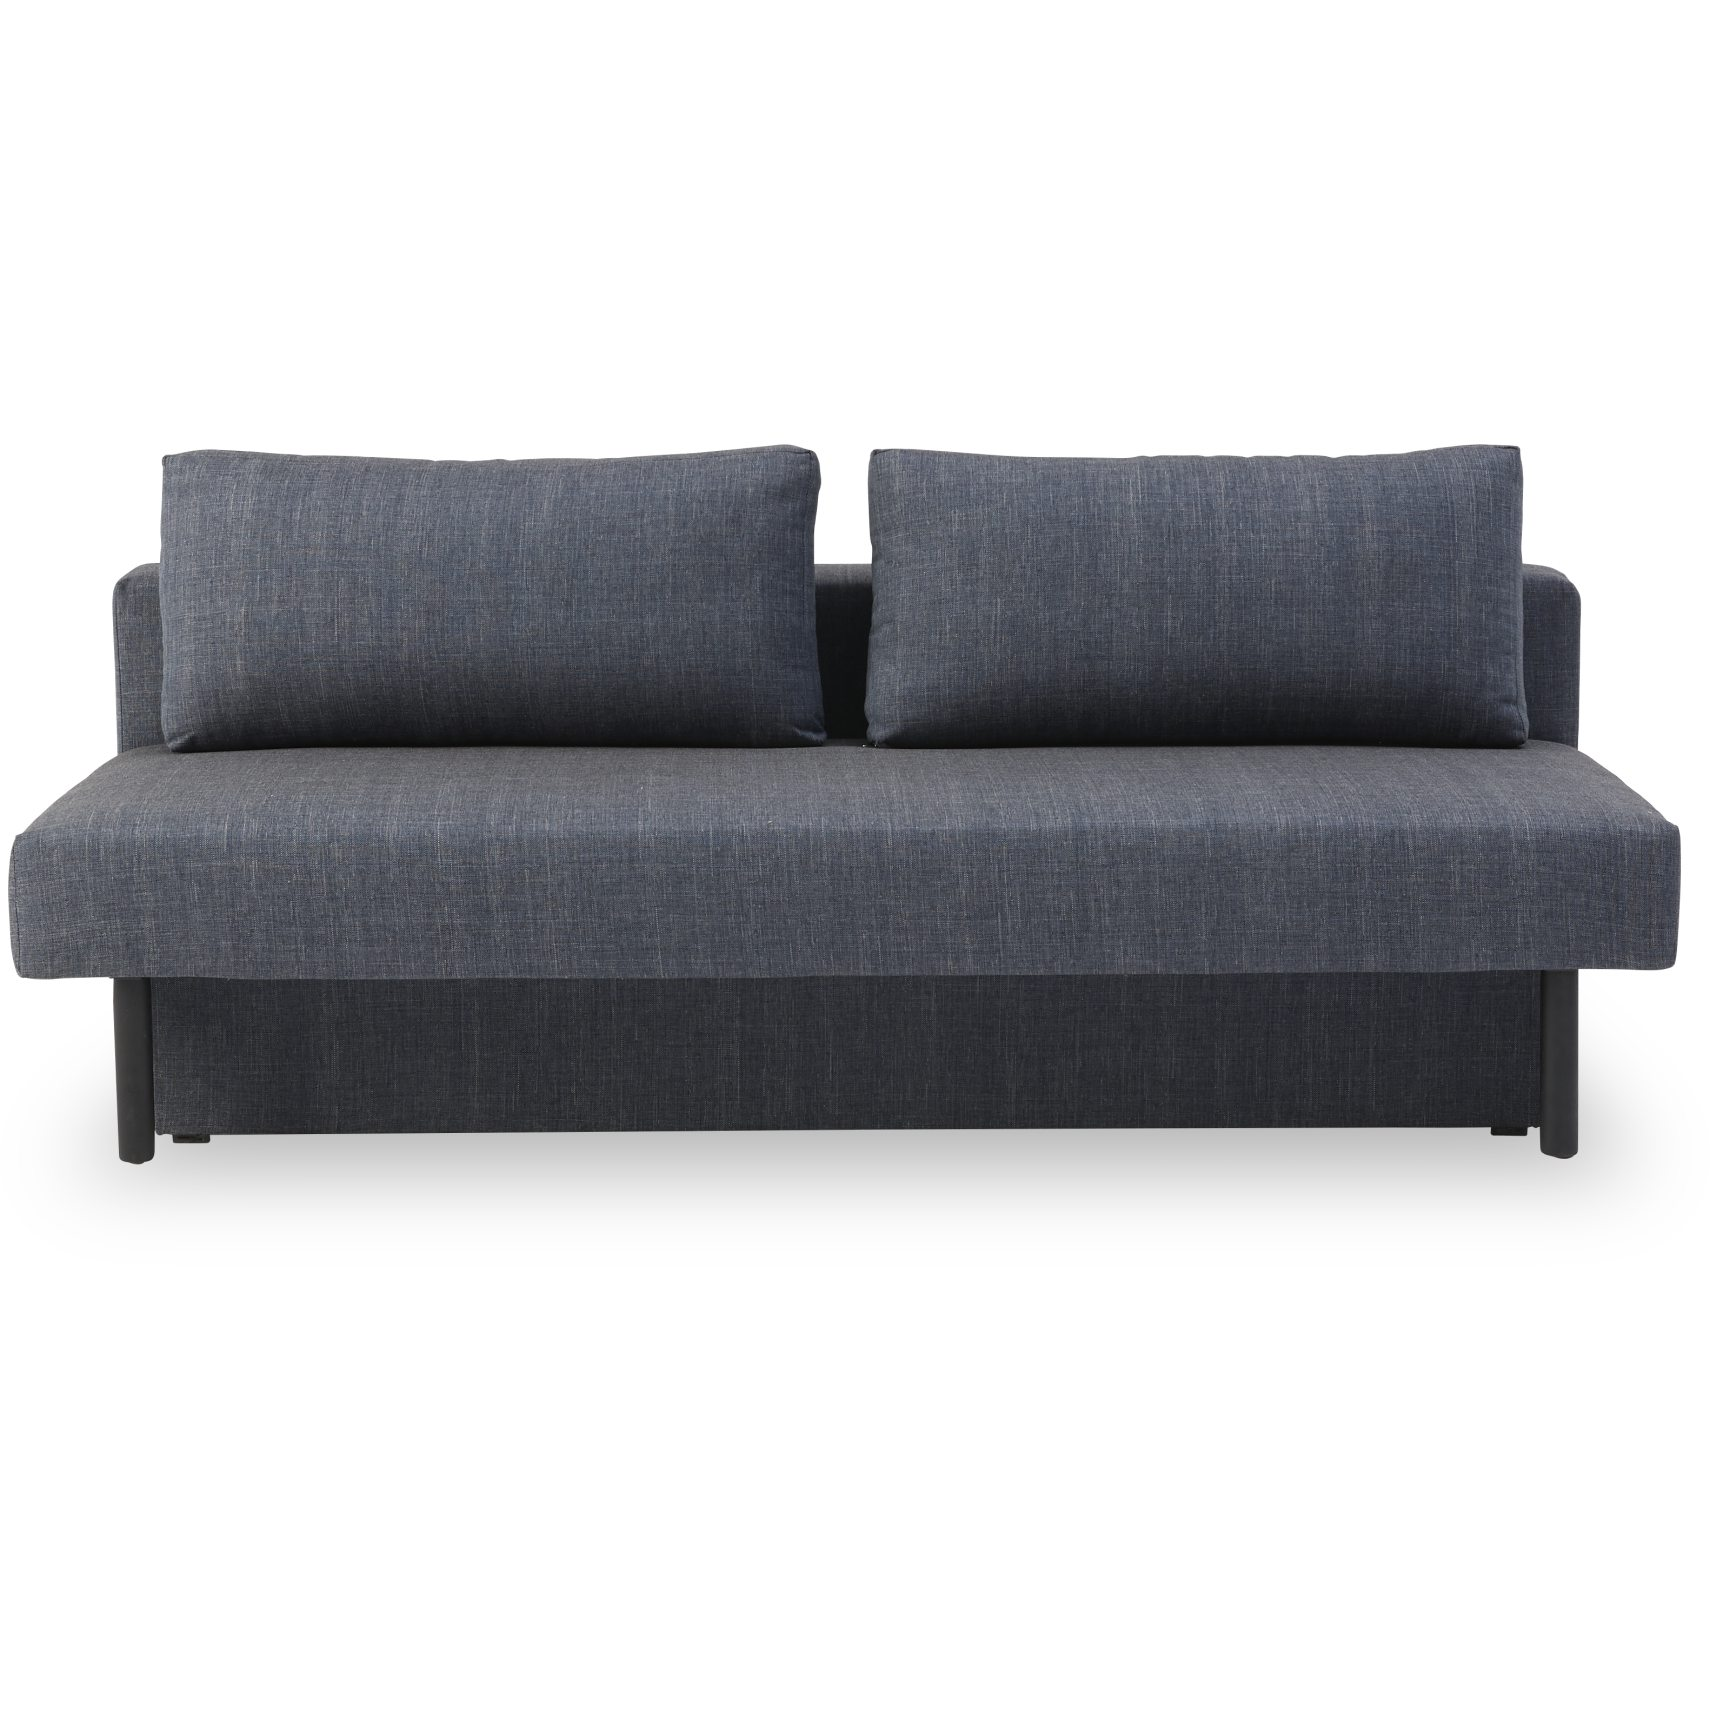 Picture of: Kob Innovation Living Tyr Sovesofa